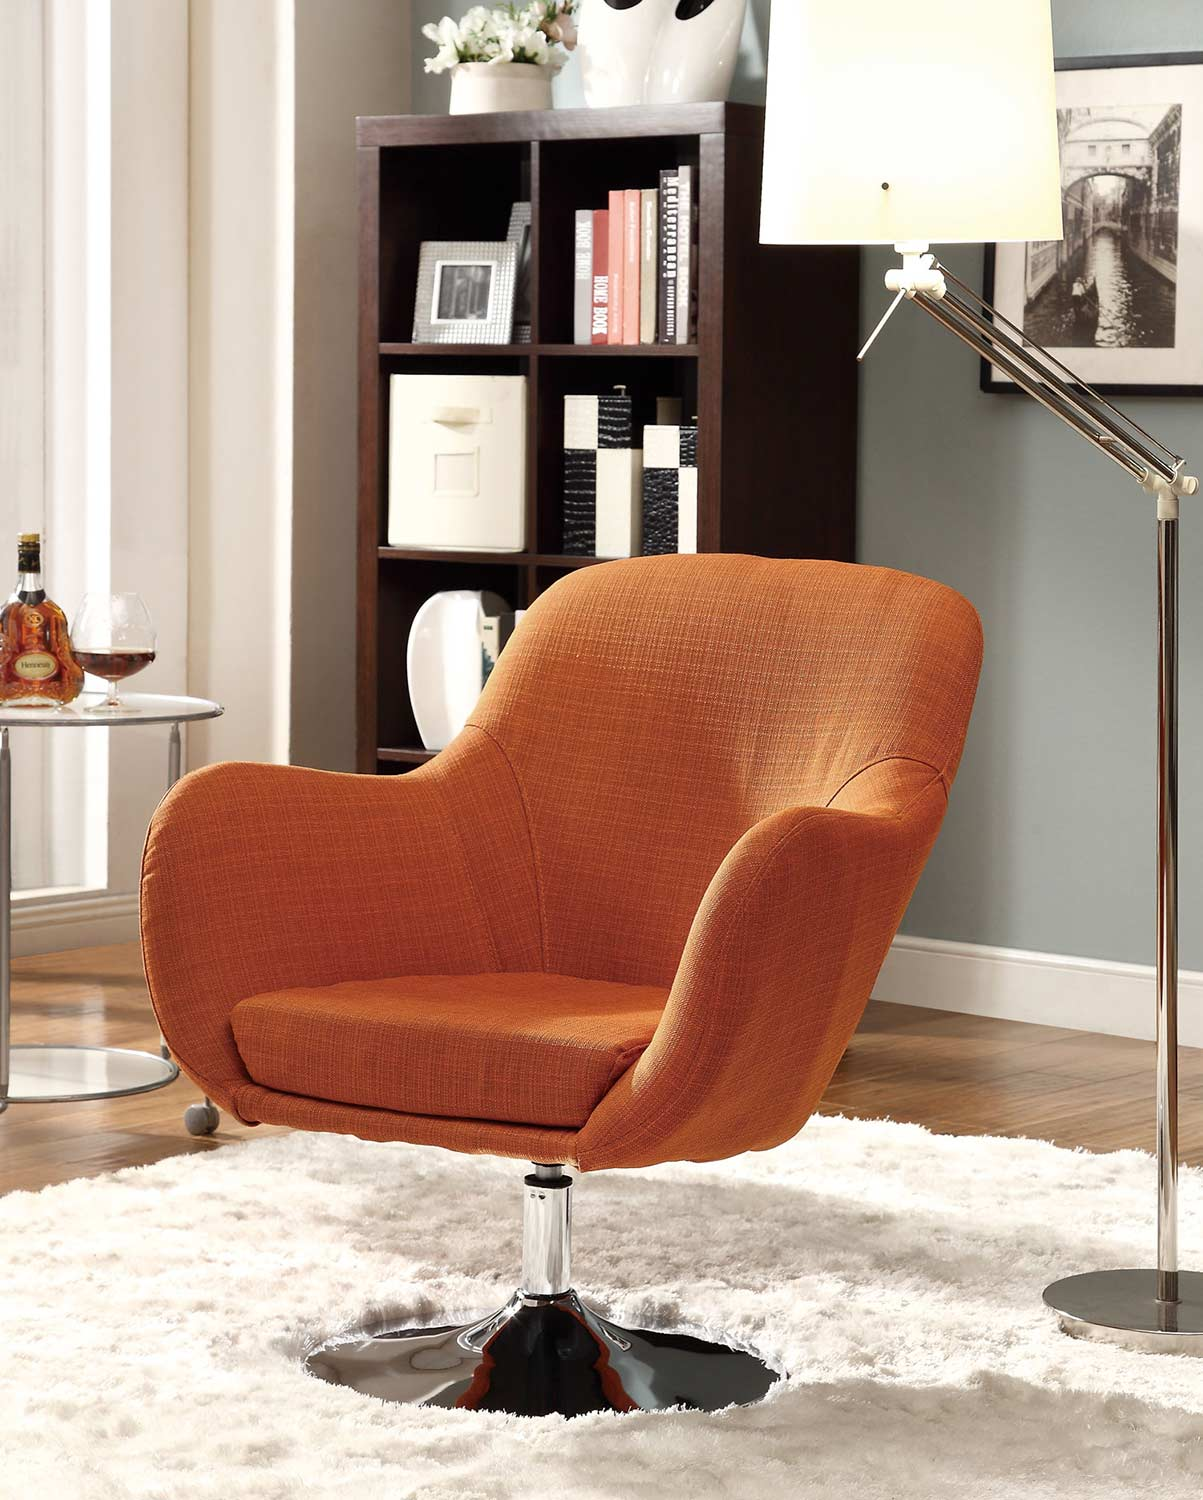 Coaster 902148 Swivel Chair - Orange